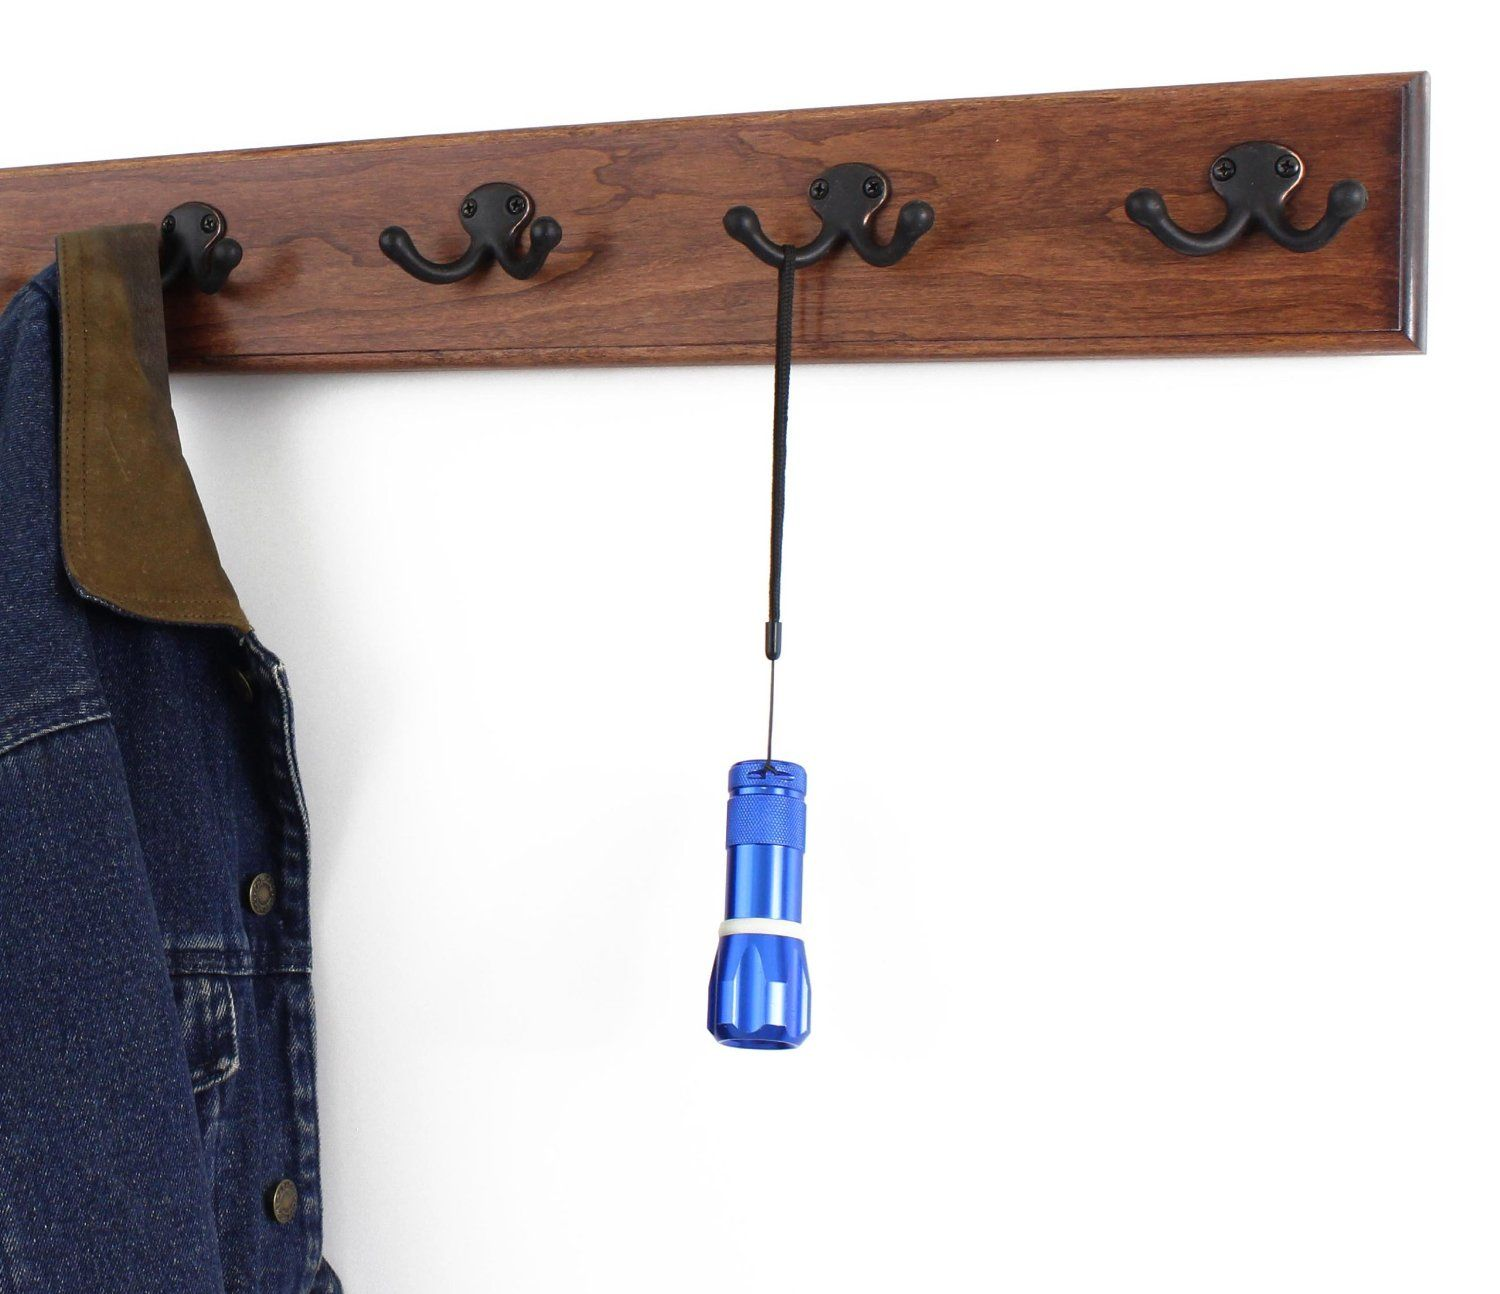 Solid Cherry Wall Mounted Coat Rack with Oil Rubbed Bronze Wall Coat Hooks Made In the USA